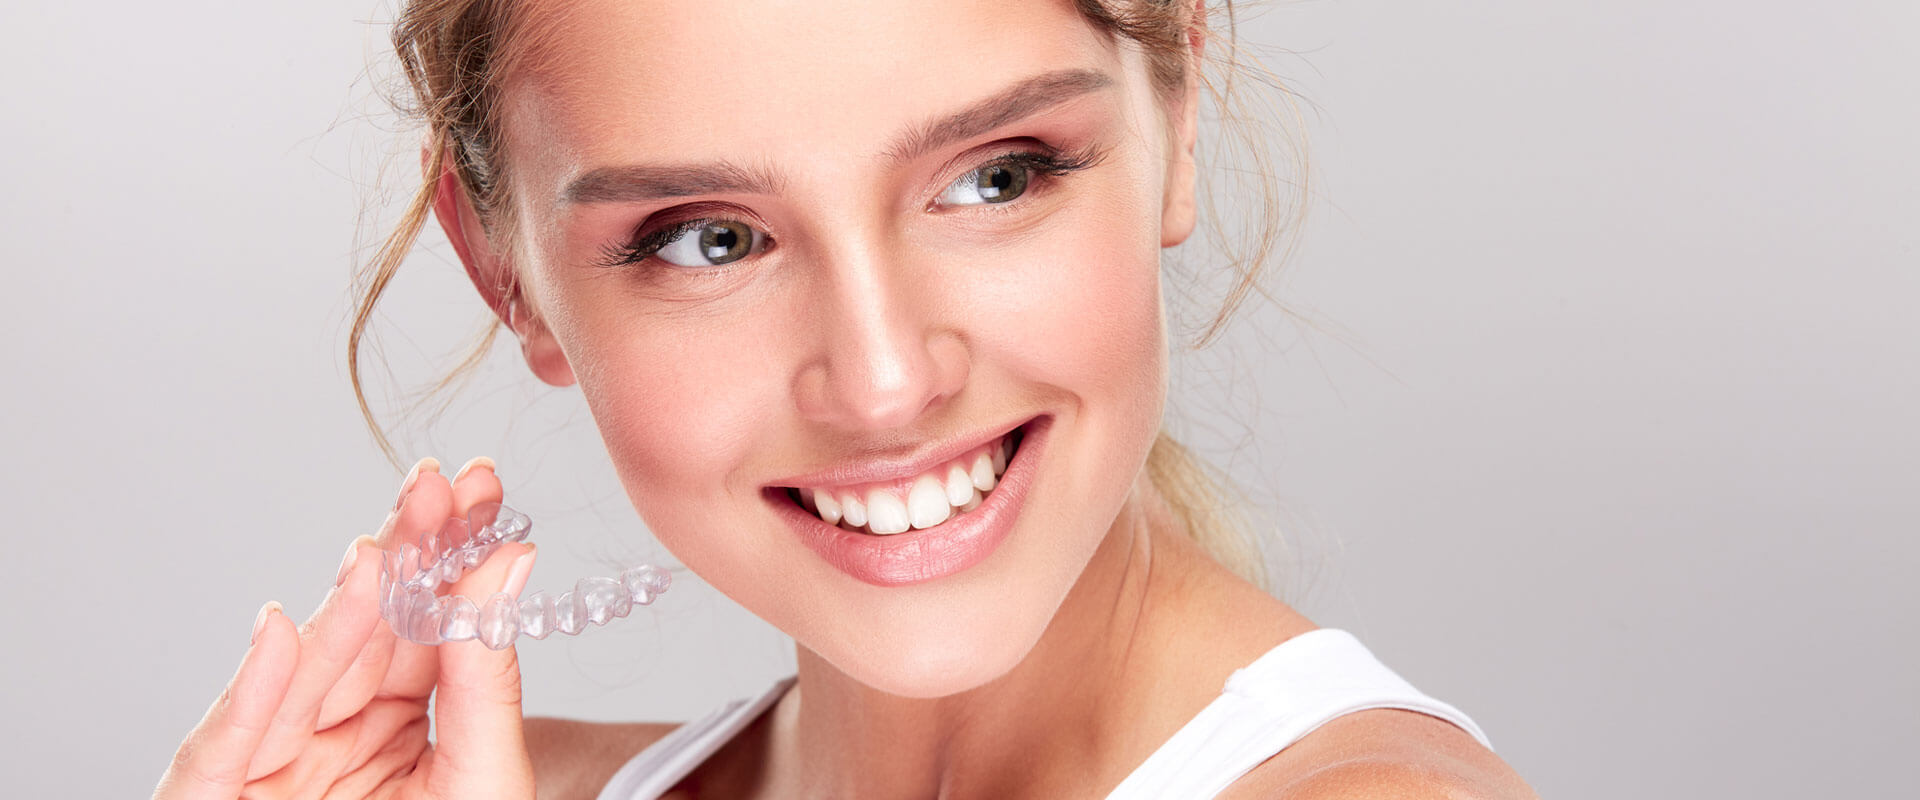 Young beautiful woman smiling holding dental equipment